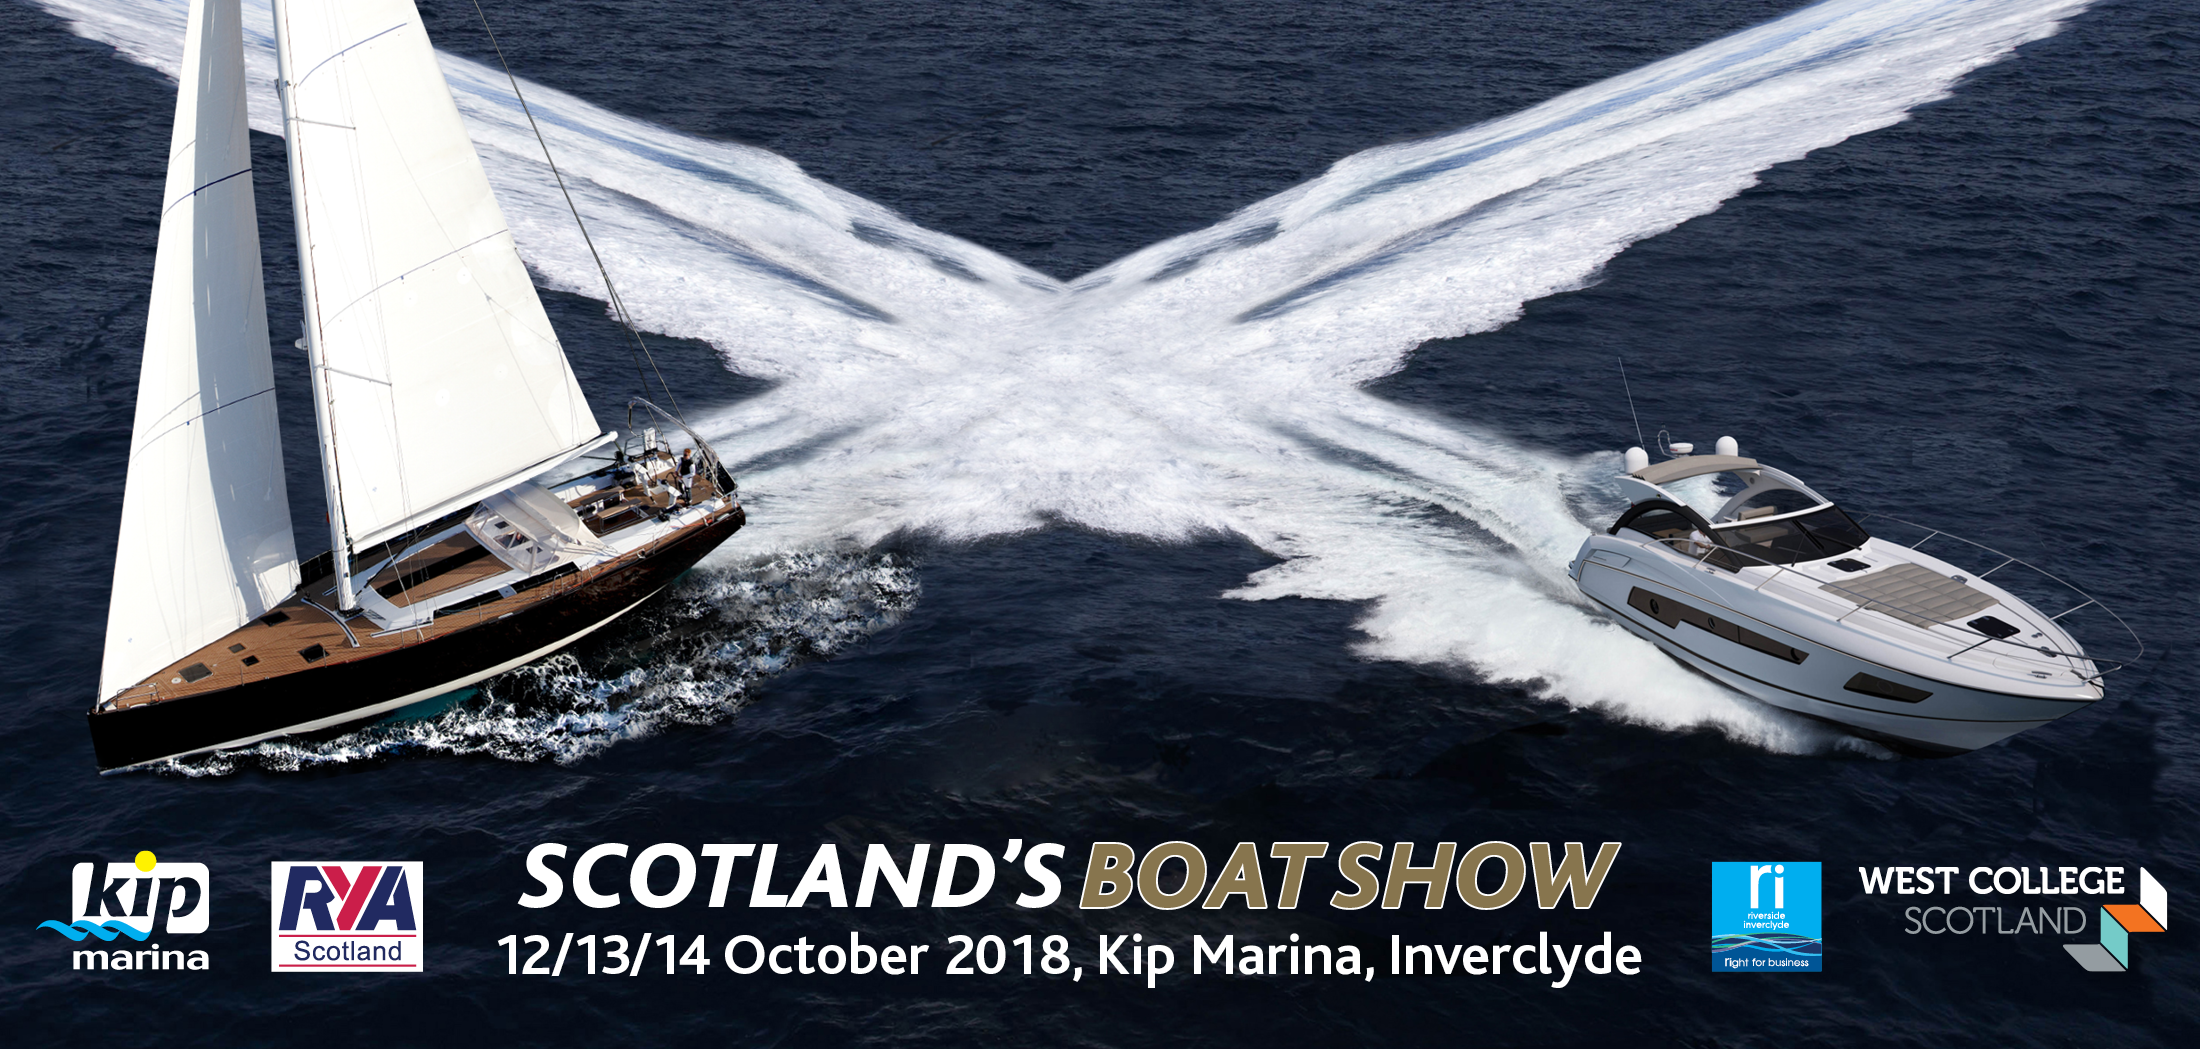 Scotlands Boat Show 2019 | Scotlands Boat Show – 11th, 12th & 13th